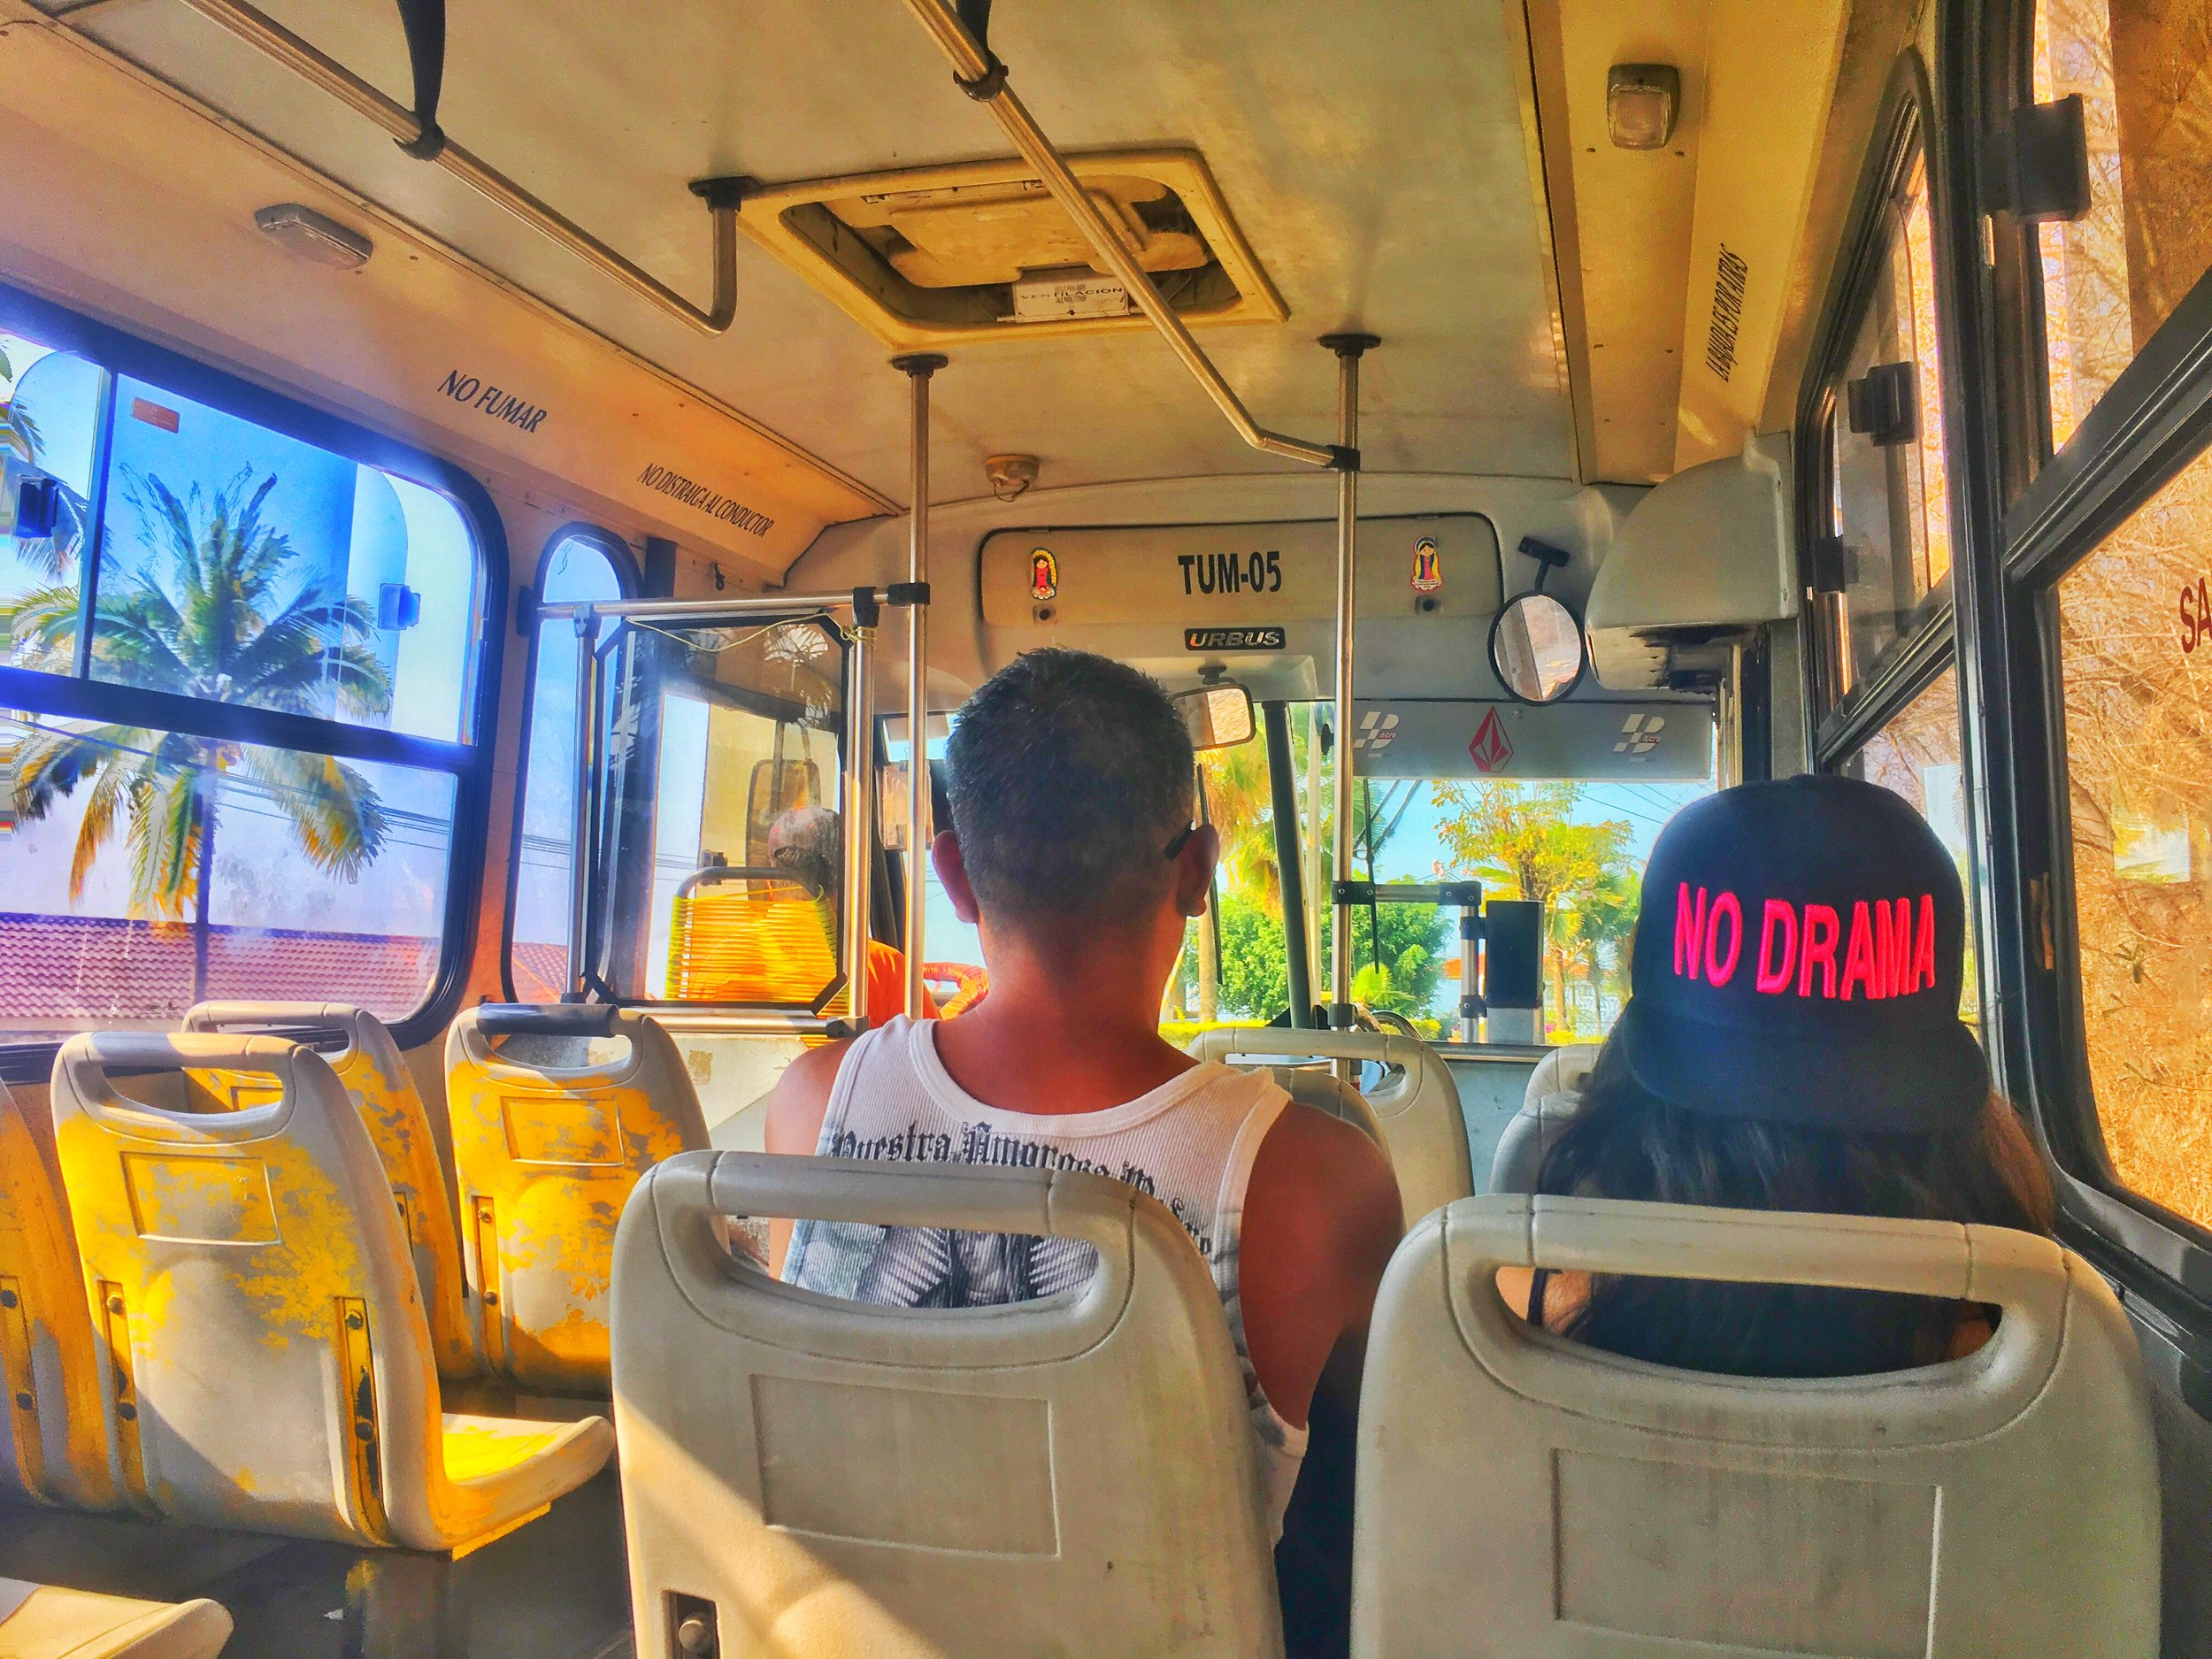 Local transportation available by bus or by taxi. Bus is 8 pesos, taxis average 180 pesos from airport to downtown Puerto Vallarta.